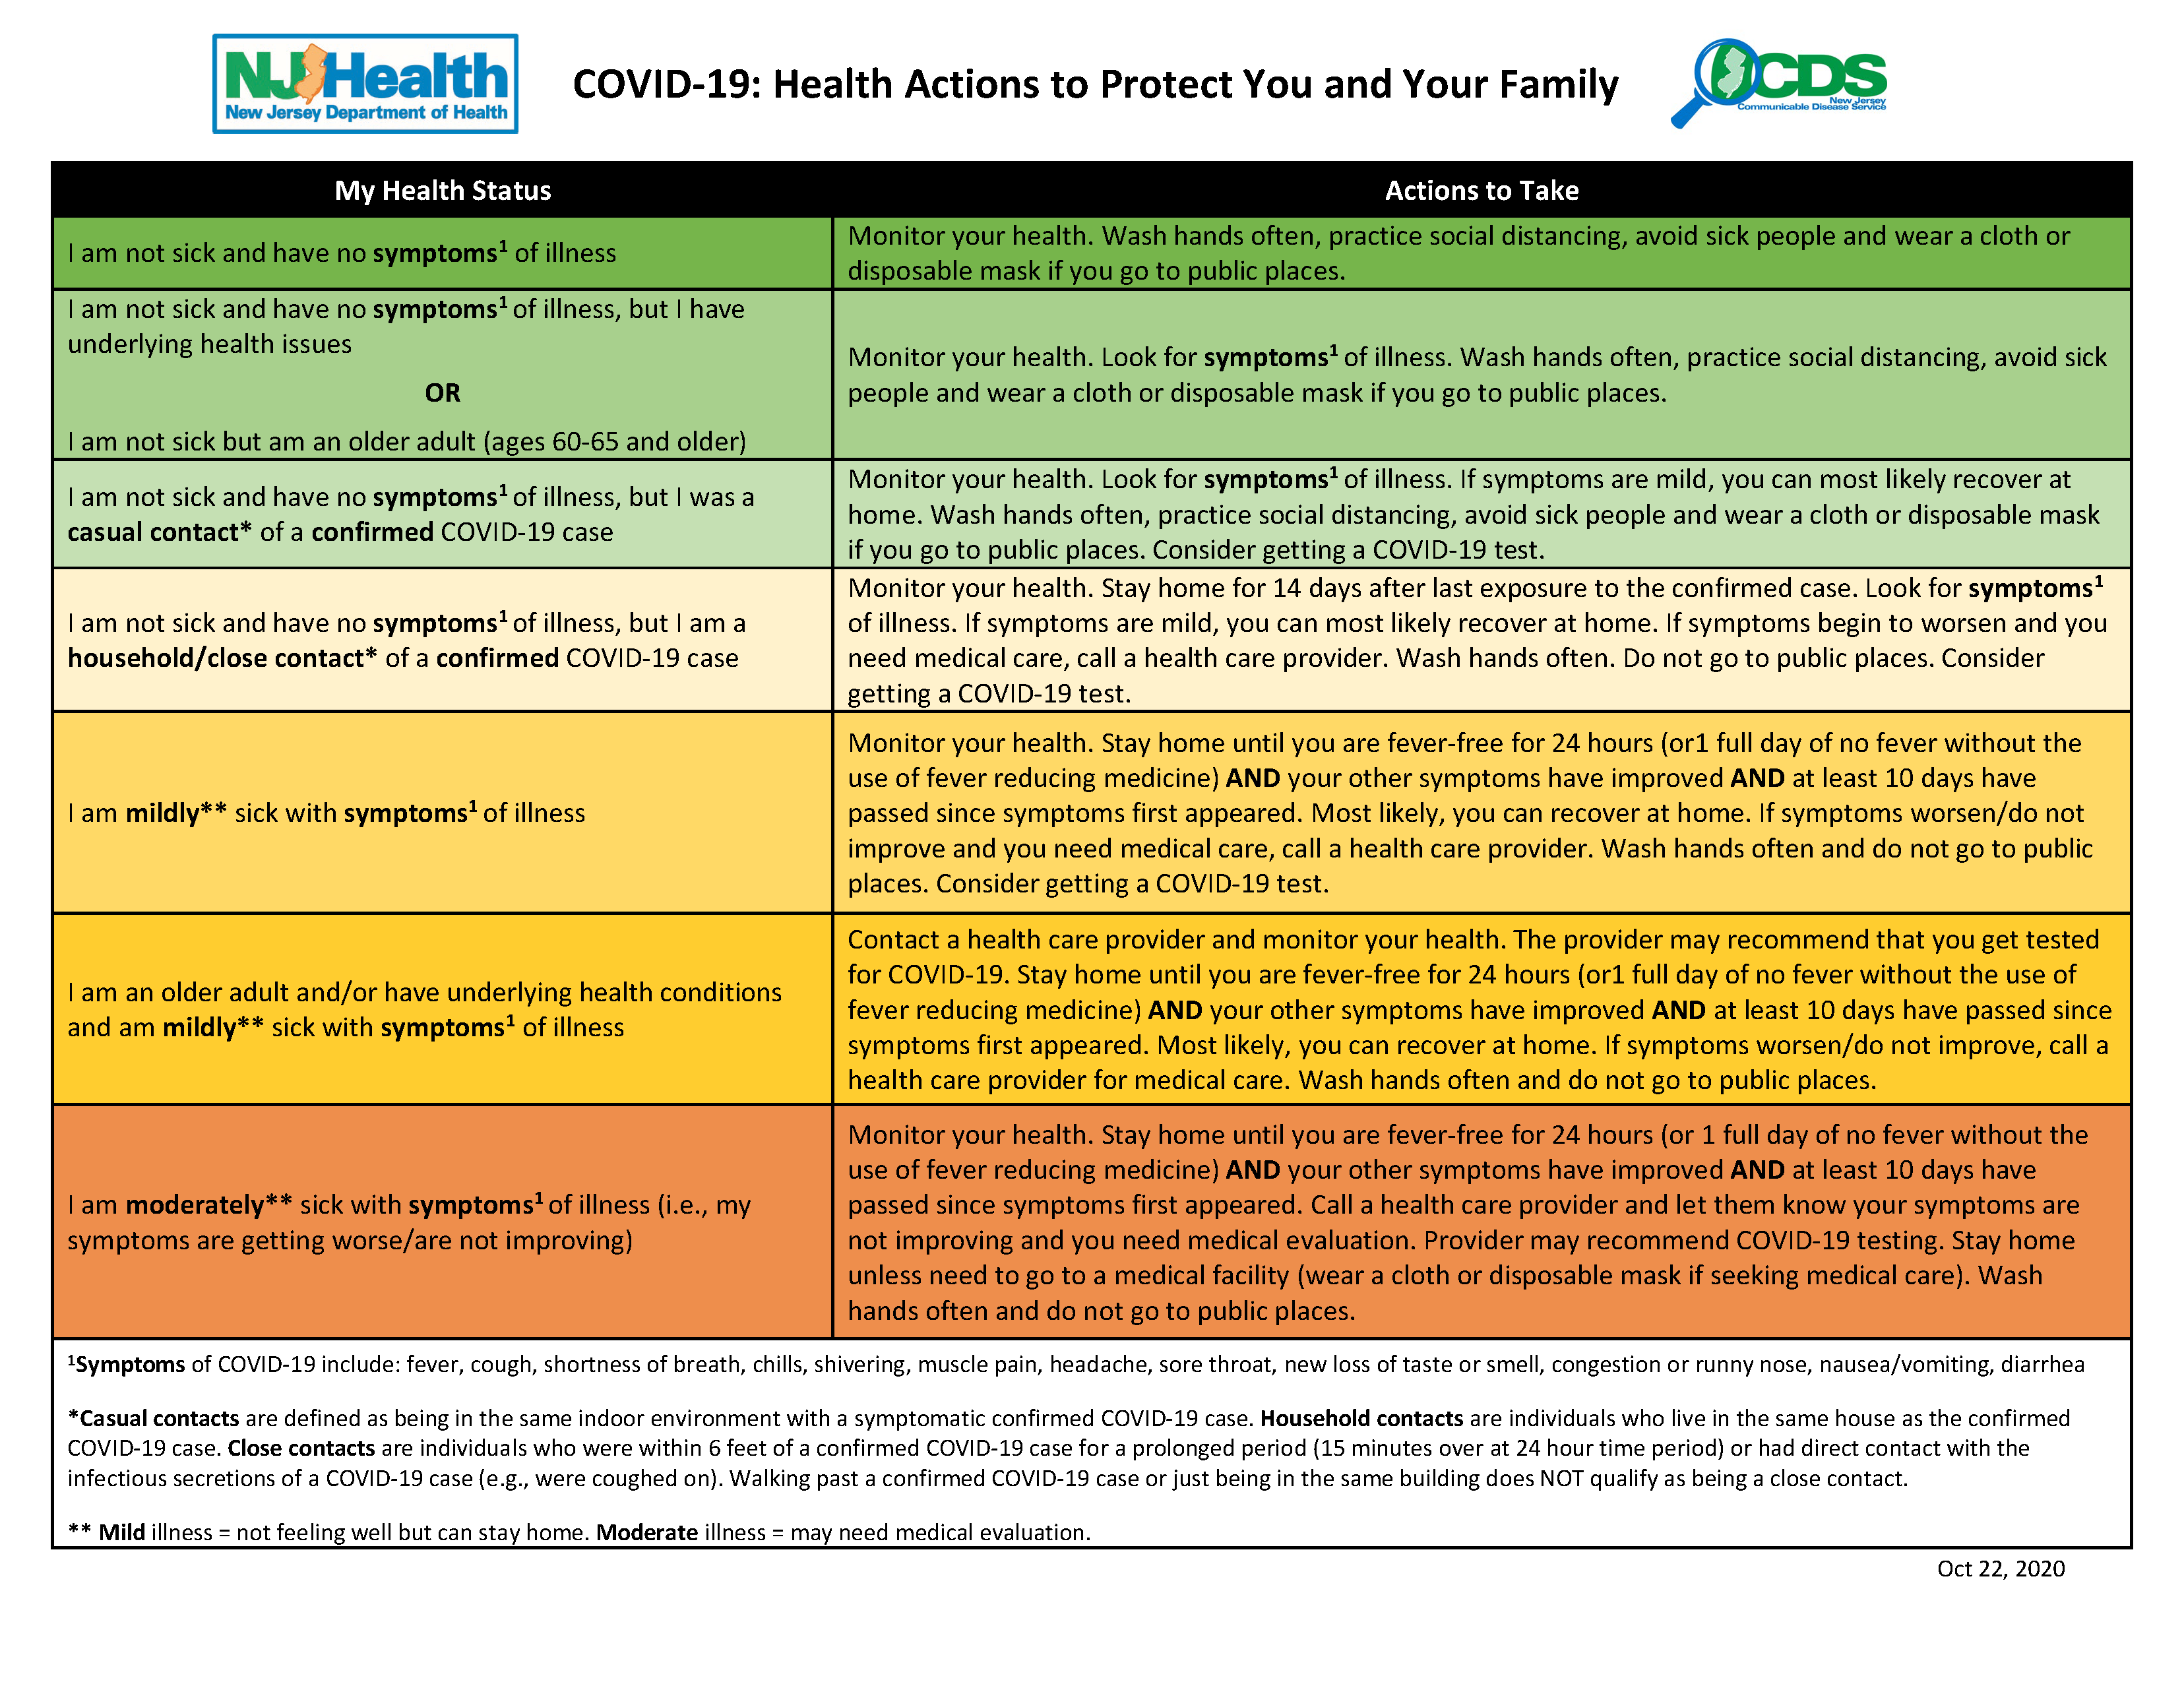 COVID-19_Health_Actions_General Public_May2020 Update (PDF) Opens in new window